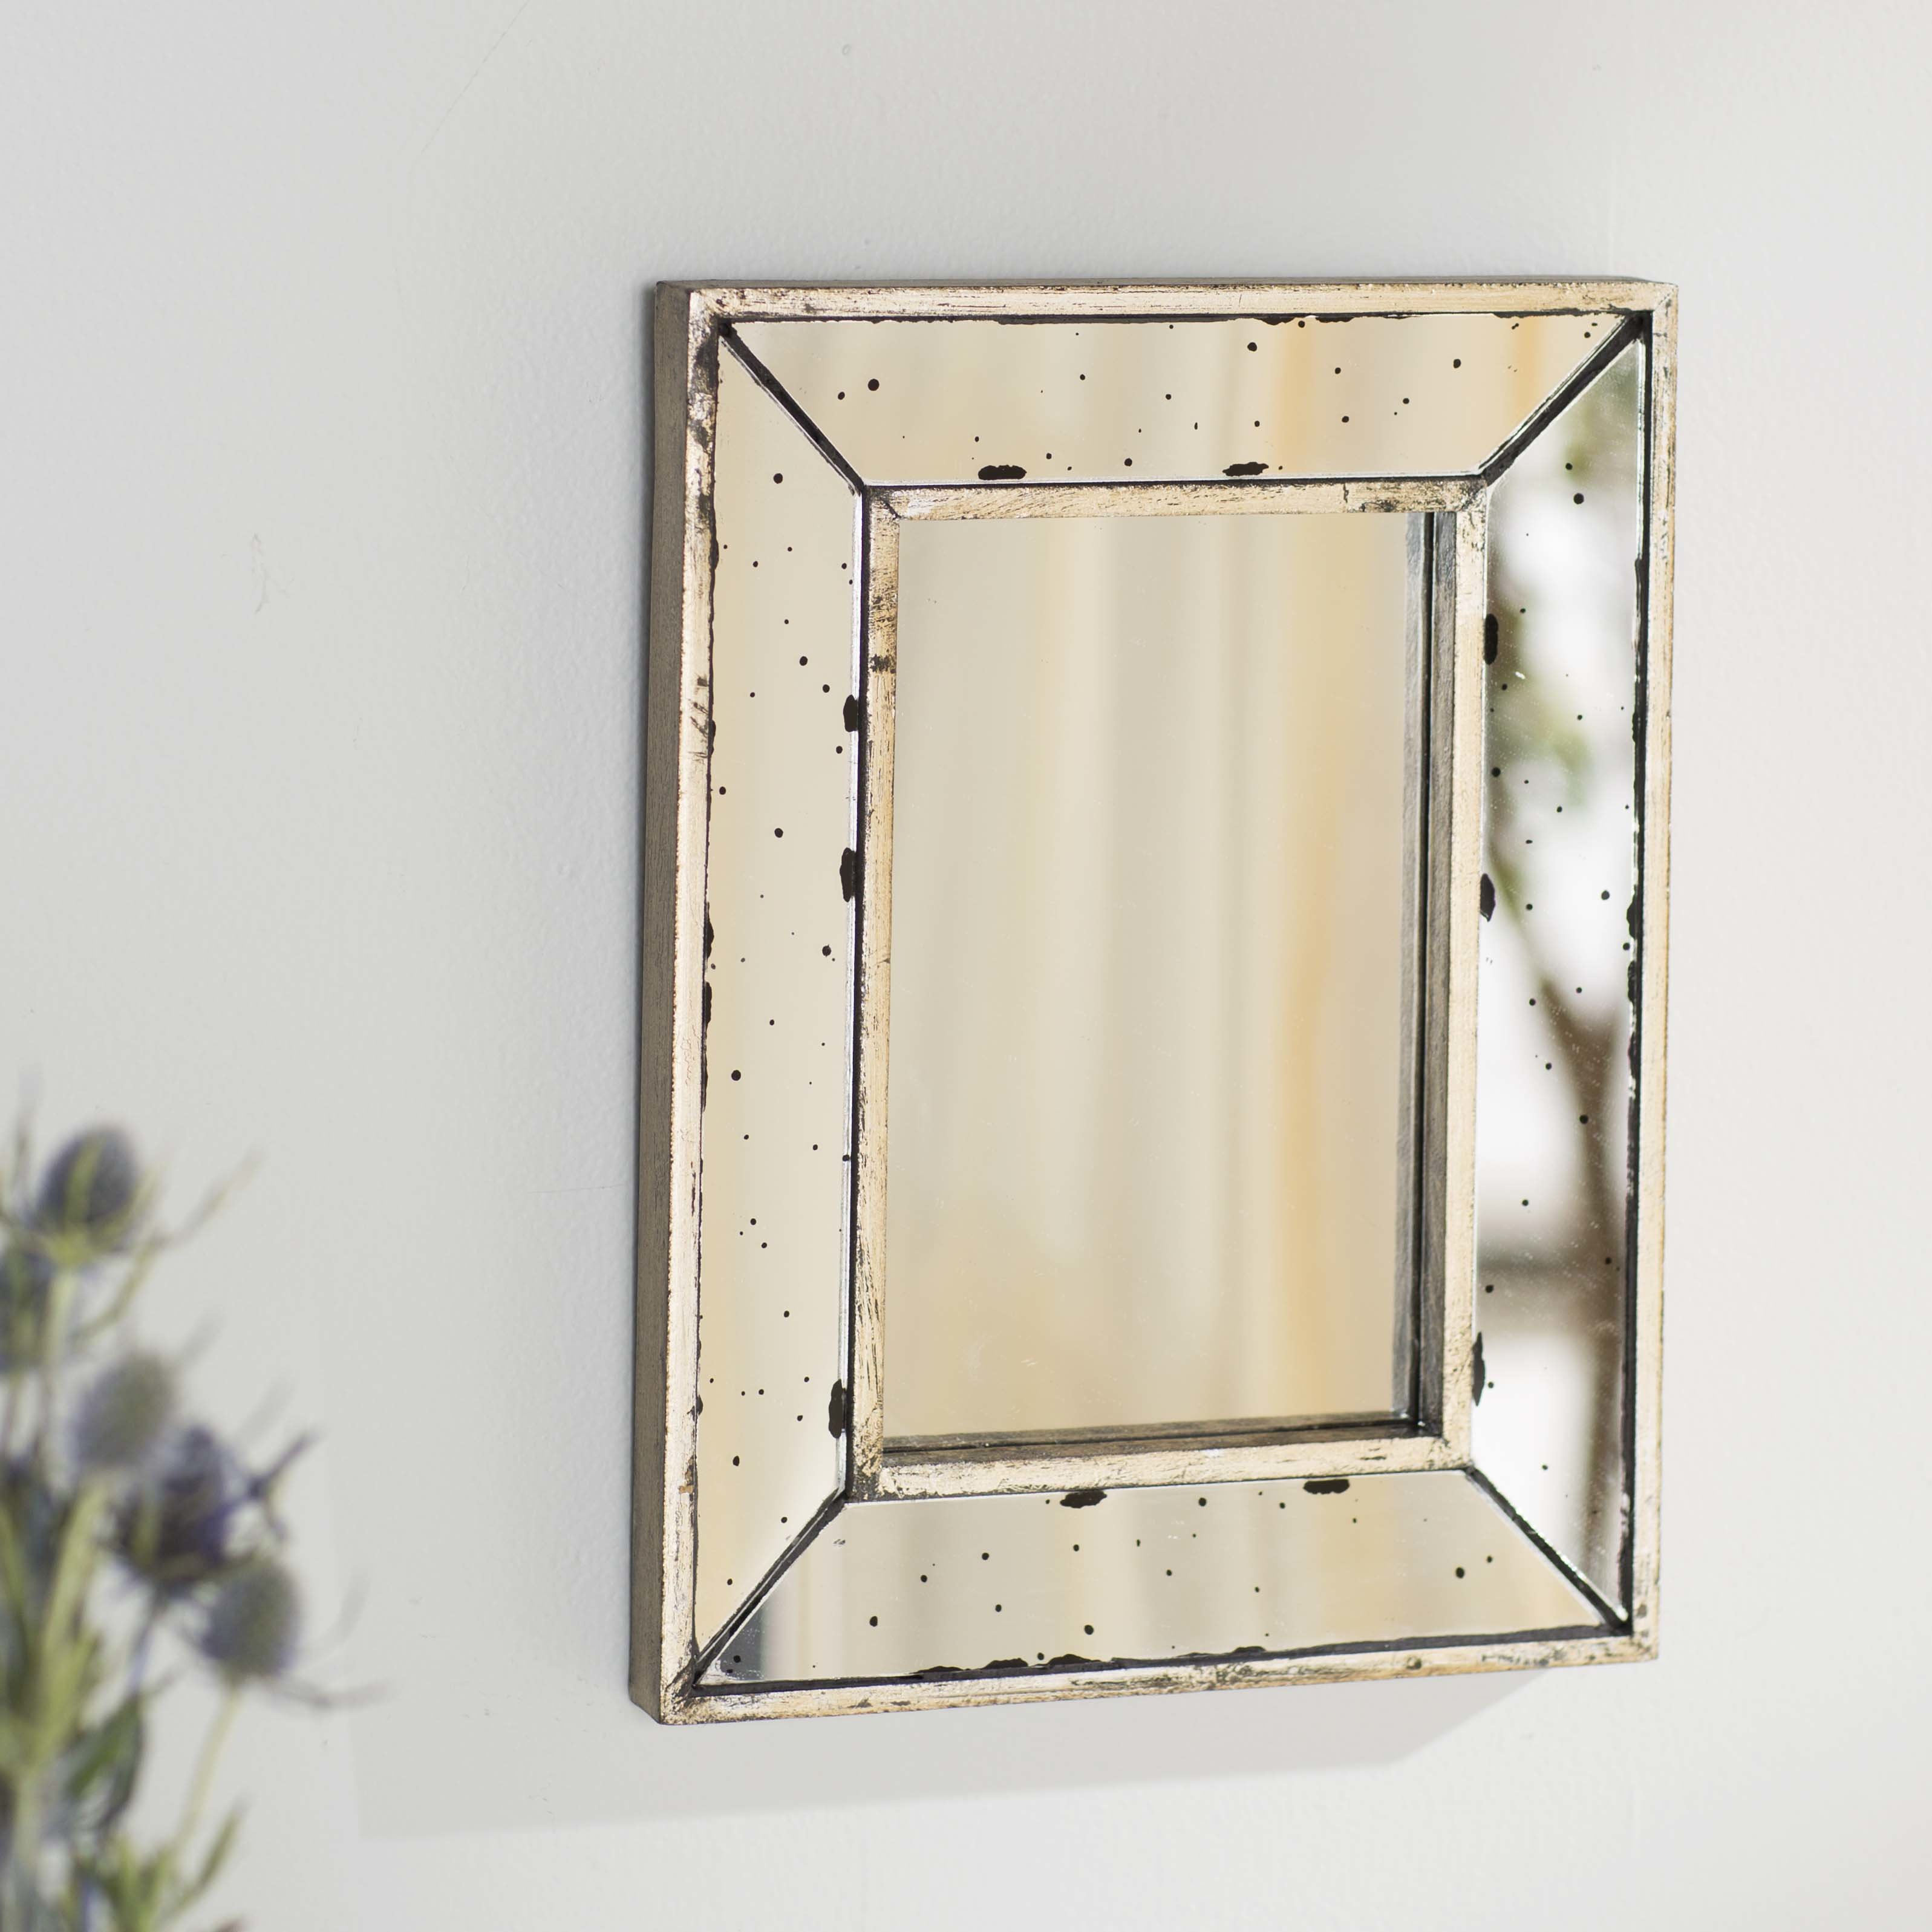 Farmhouse & Rustic Lark Manor Wall & Accent Mirrors | Birch Lane For Polito Cottage/country Wall Mirrors (Image 6 of 30)